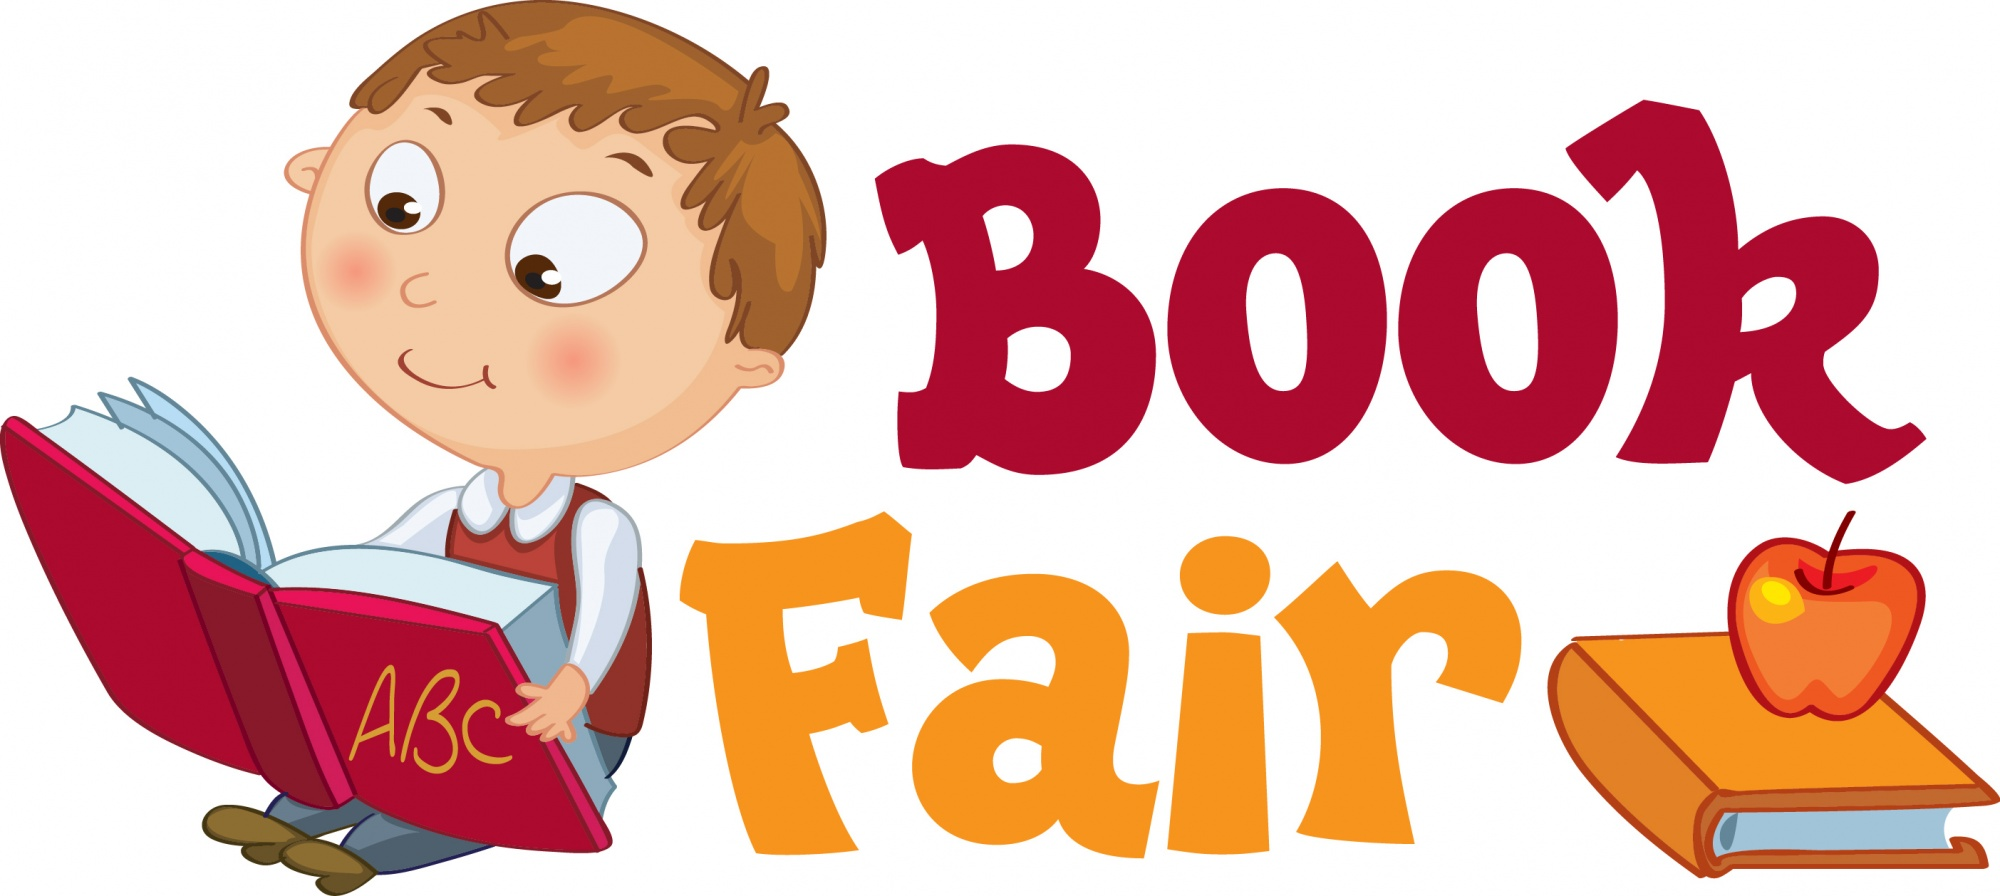 ... Book Fair Clipart ...-... Book Fair Clipart ...-5